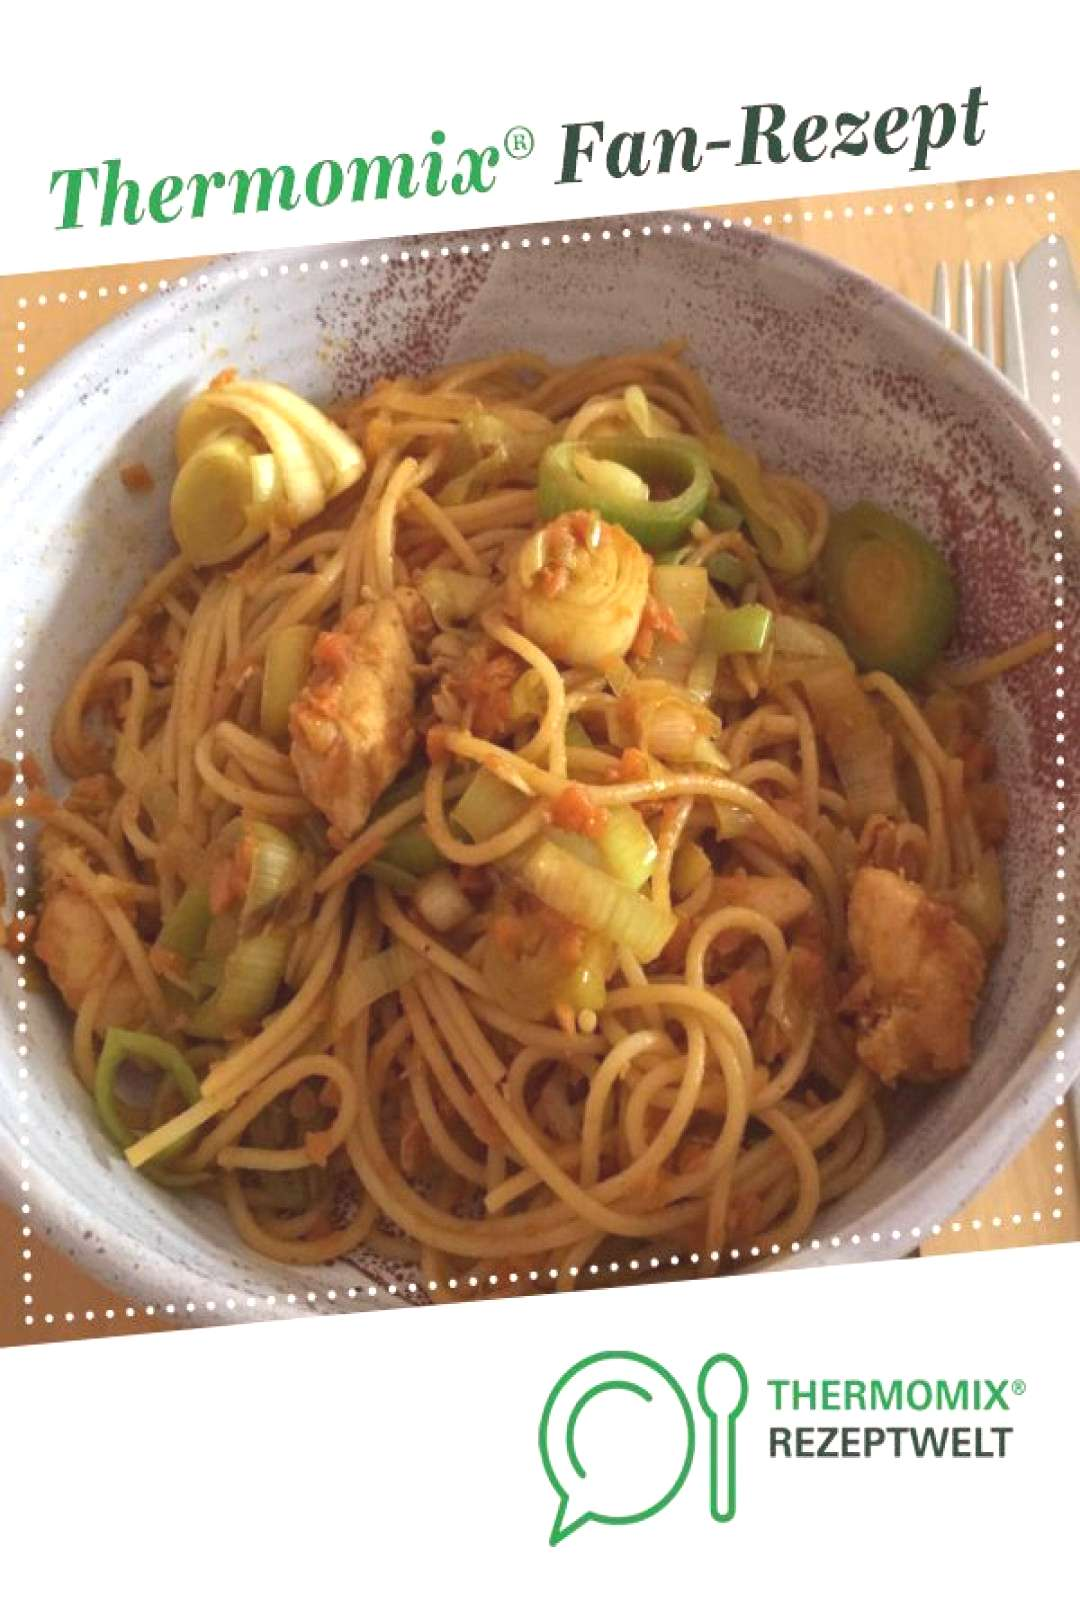 Fried noodles with chicken -  Fried noodles with chicken from Maschti. A Thermomix ®️️ recipe